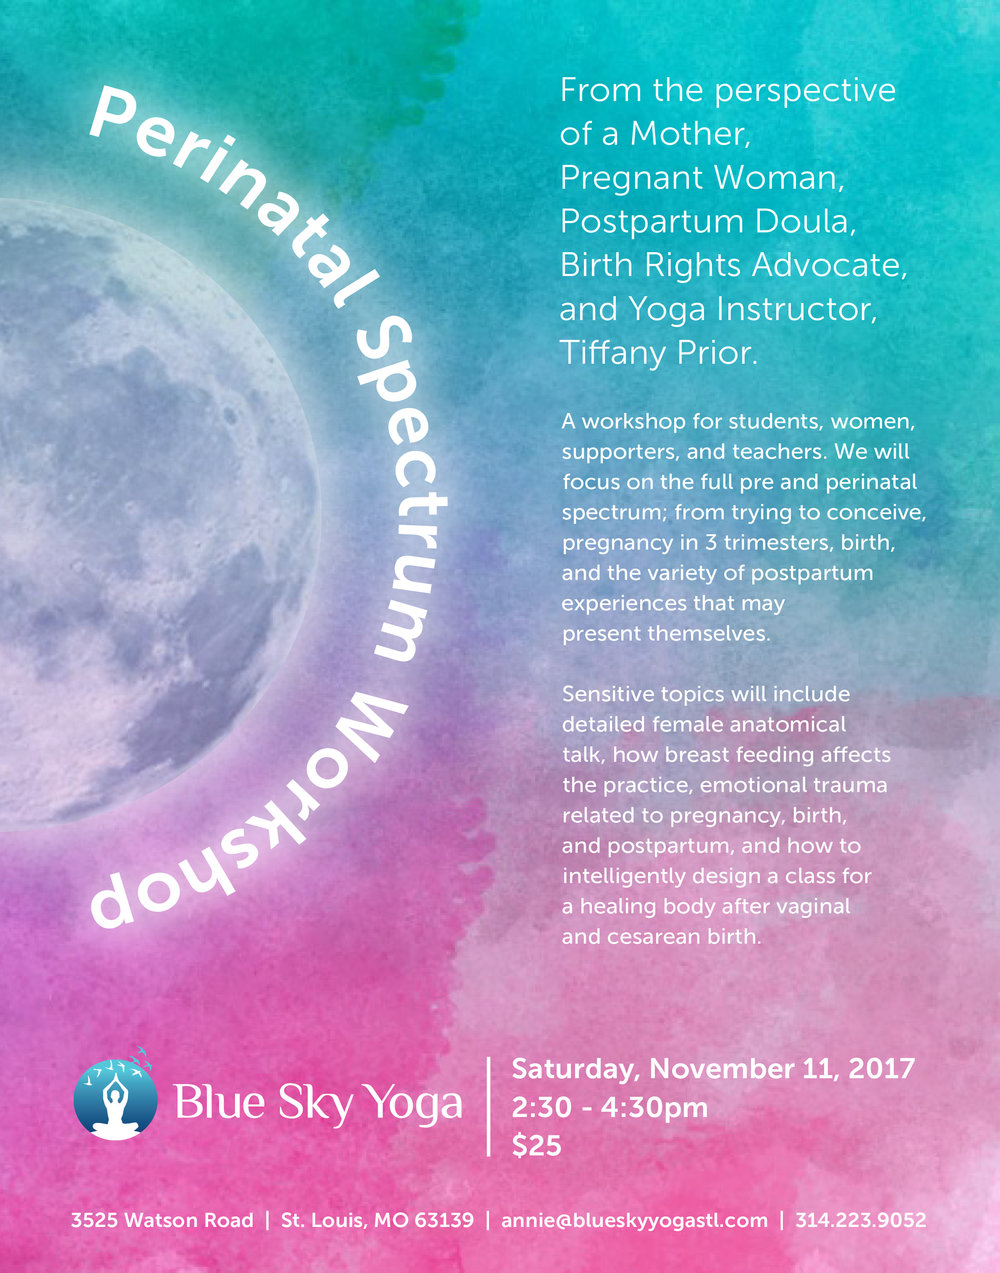 Perinatal Spectrum Workshop-blue-sky-yoga.jpg